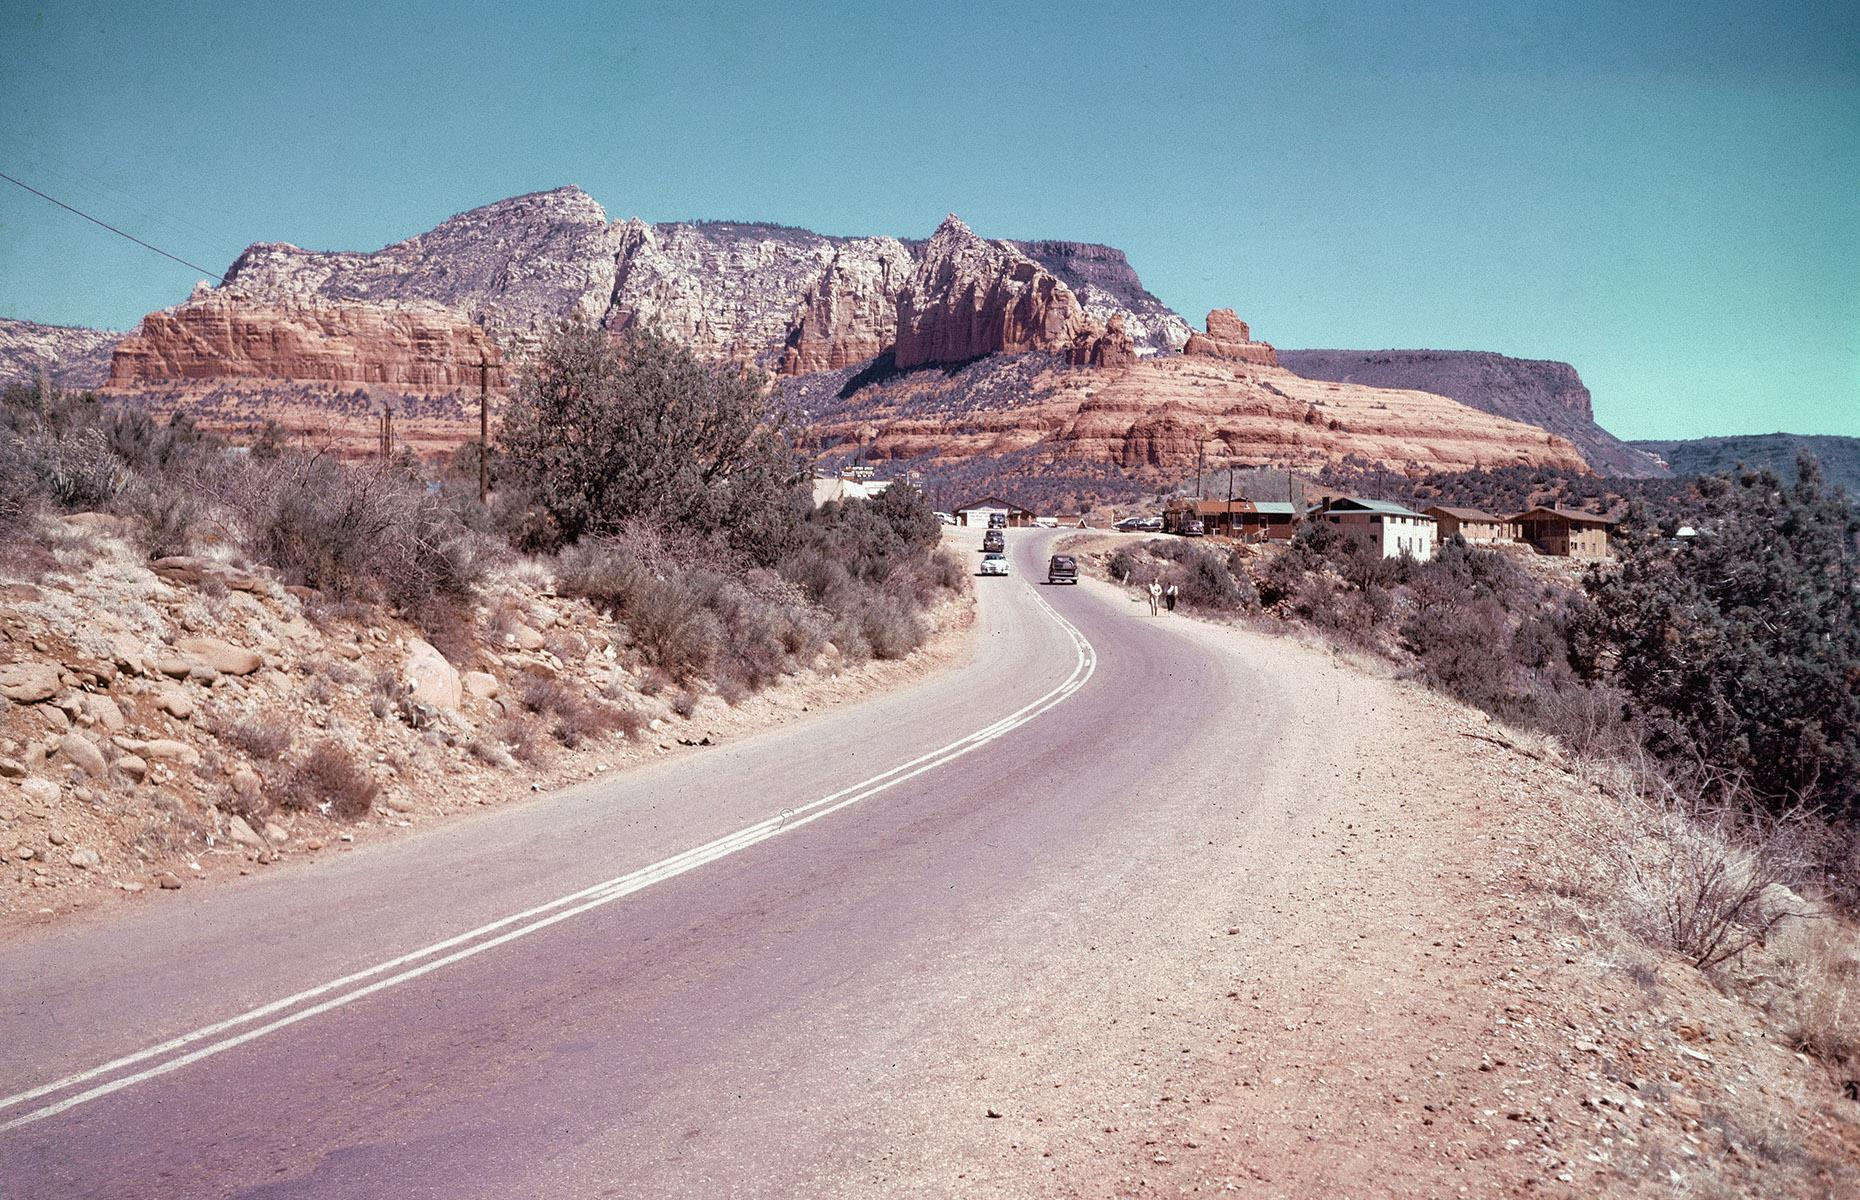 """Slide 35 of 48: While the year 1926 marked the birth of Route 66, the """"Mother Road"""" really became synonymous with the great American road trip in the 1950s and 1960s. Post-war, American motorists flocked to Route 66which was by now peppered with motels, auto camps, diners and gas stations. In 1960, Route 66, an American TV series that followed the escapades of a pair of young men traveling the route, aired on CBS. As the route continued to crop up in popular culture, America's fascination with it grew. Discover more epic road trips across the US here."""